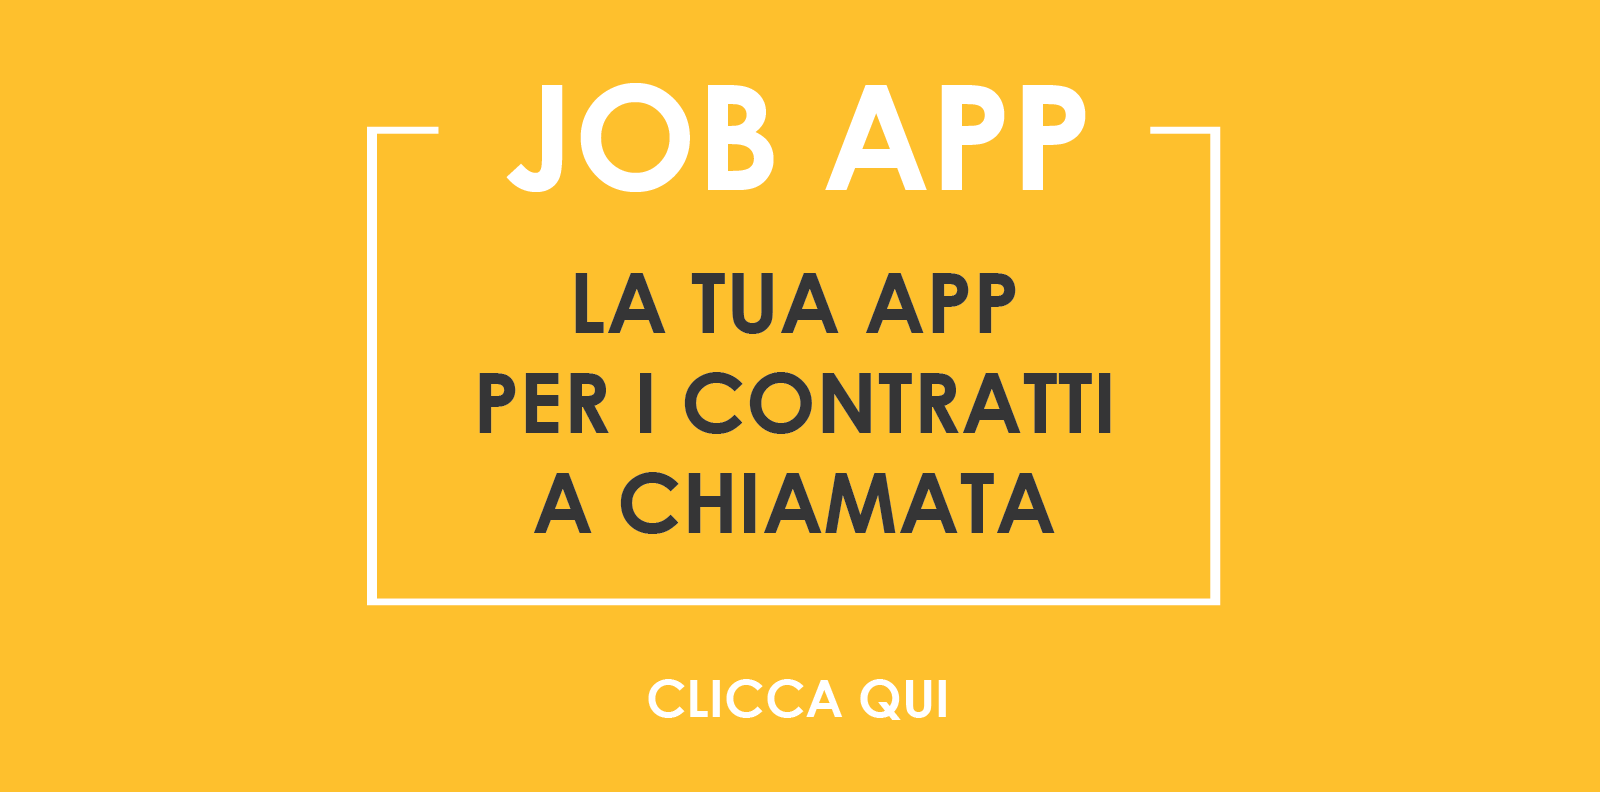 JOB APP HOME ACA 01